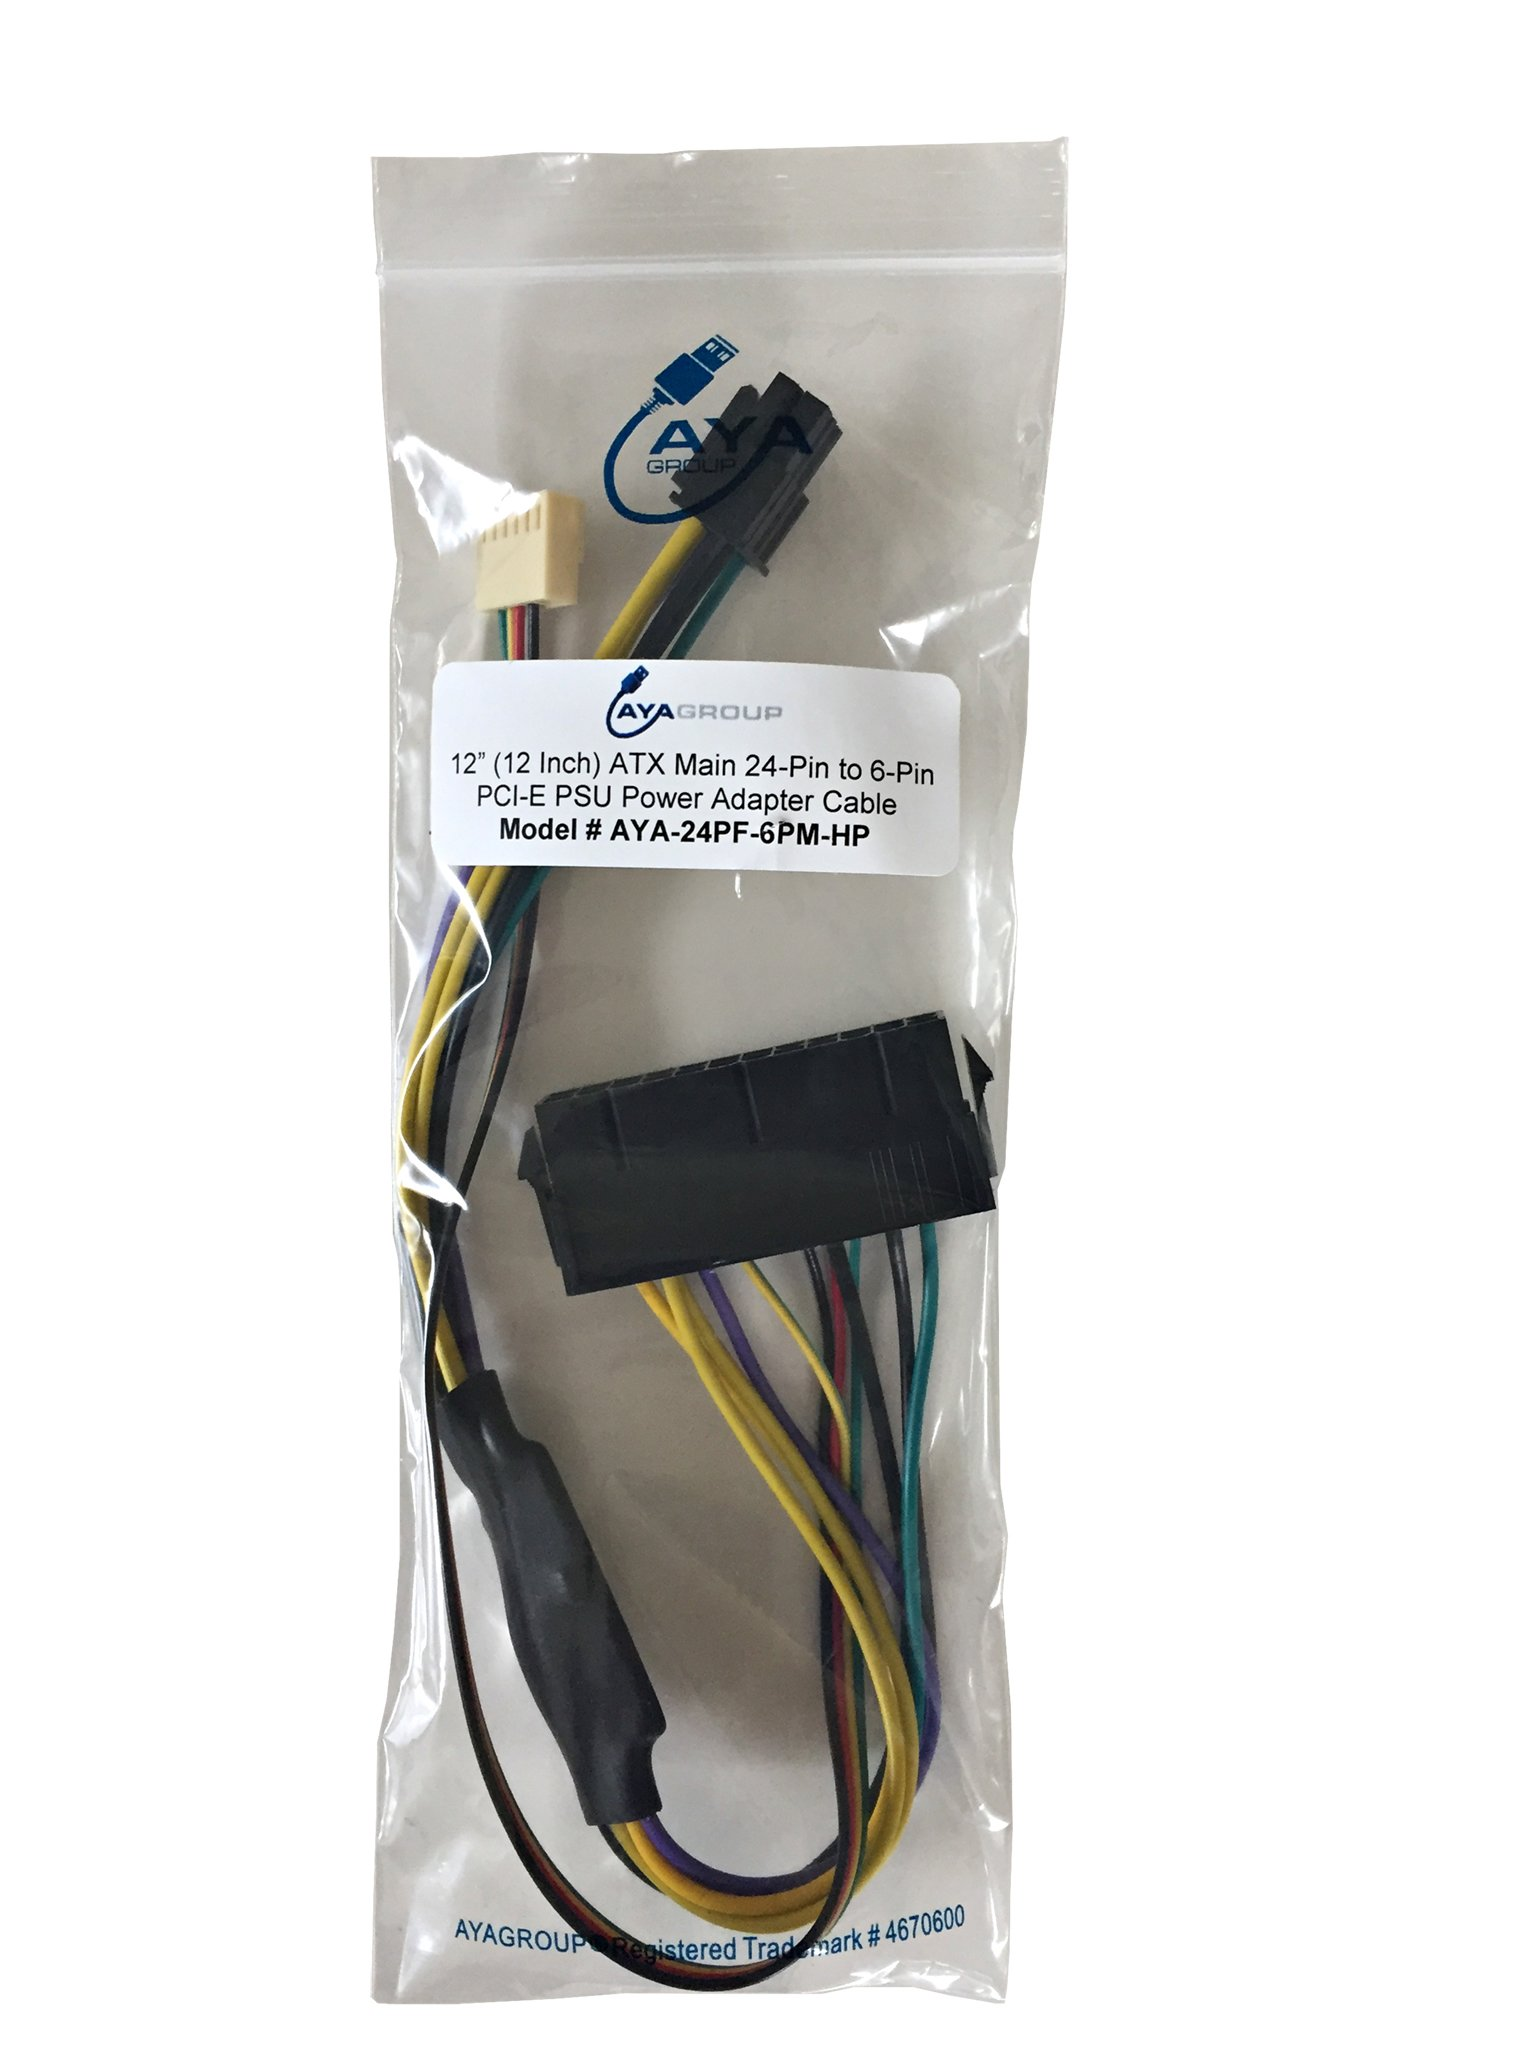 AYA 12'' (12 Inch) ATX Main 24-Pin to 6-Pin PCI-E PSU Power Adapter Cable 18AWG for HP Z220/Z230, Elite 8000, 8100, 8200, 8300, HP 800 G1, HP Compaq 6200 Pro MT by AYAGROUP (Image #5)